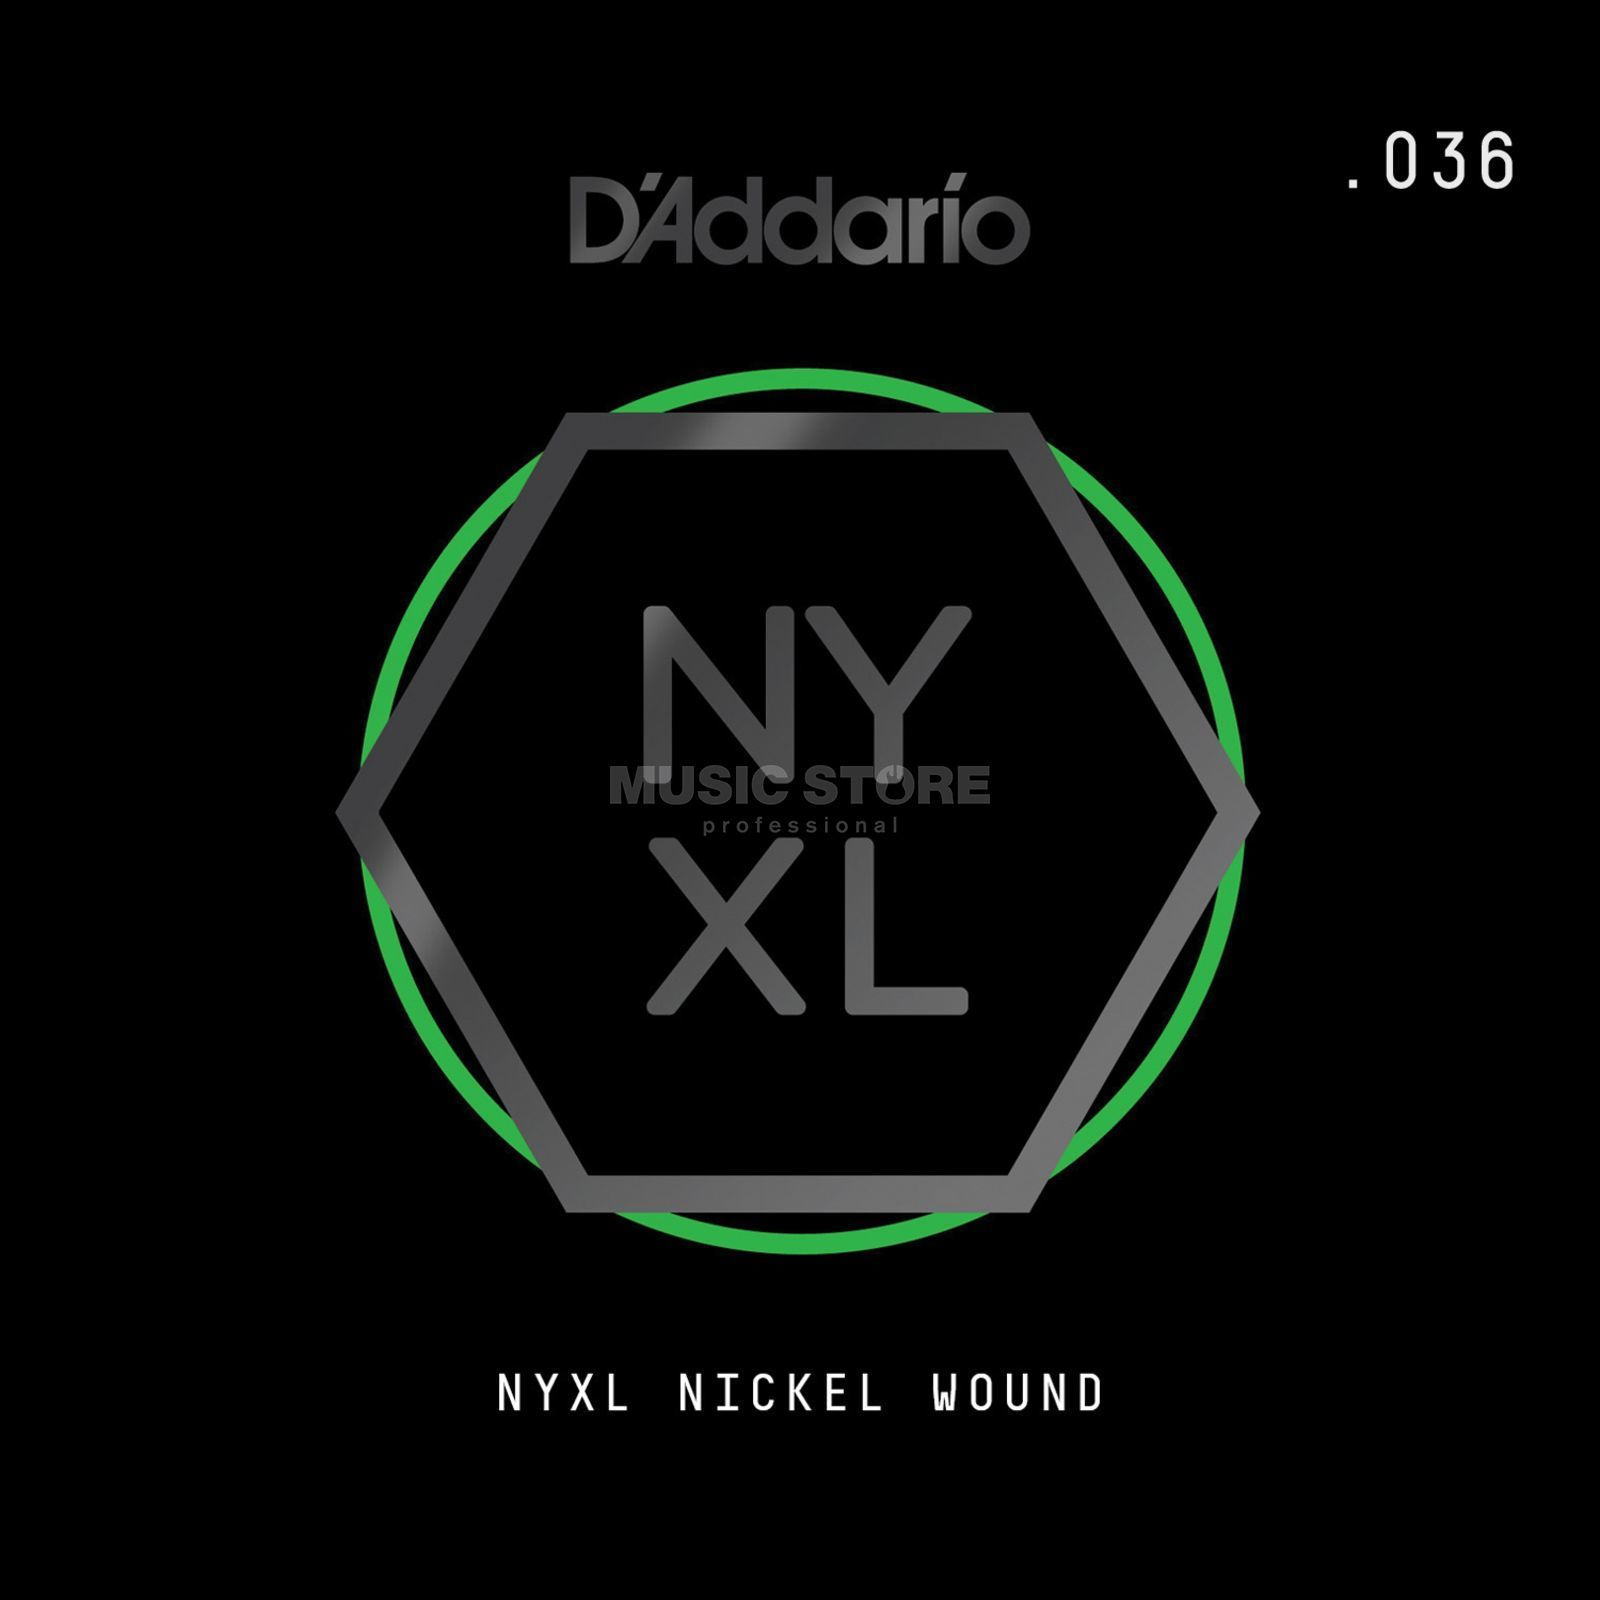 D'Addario NYNW036 Single String Nickel Wound Imagem do produto